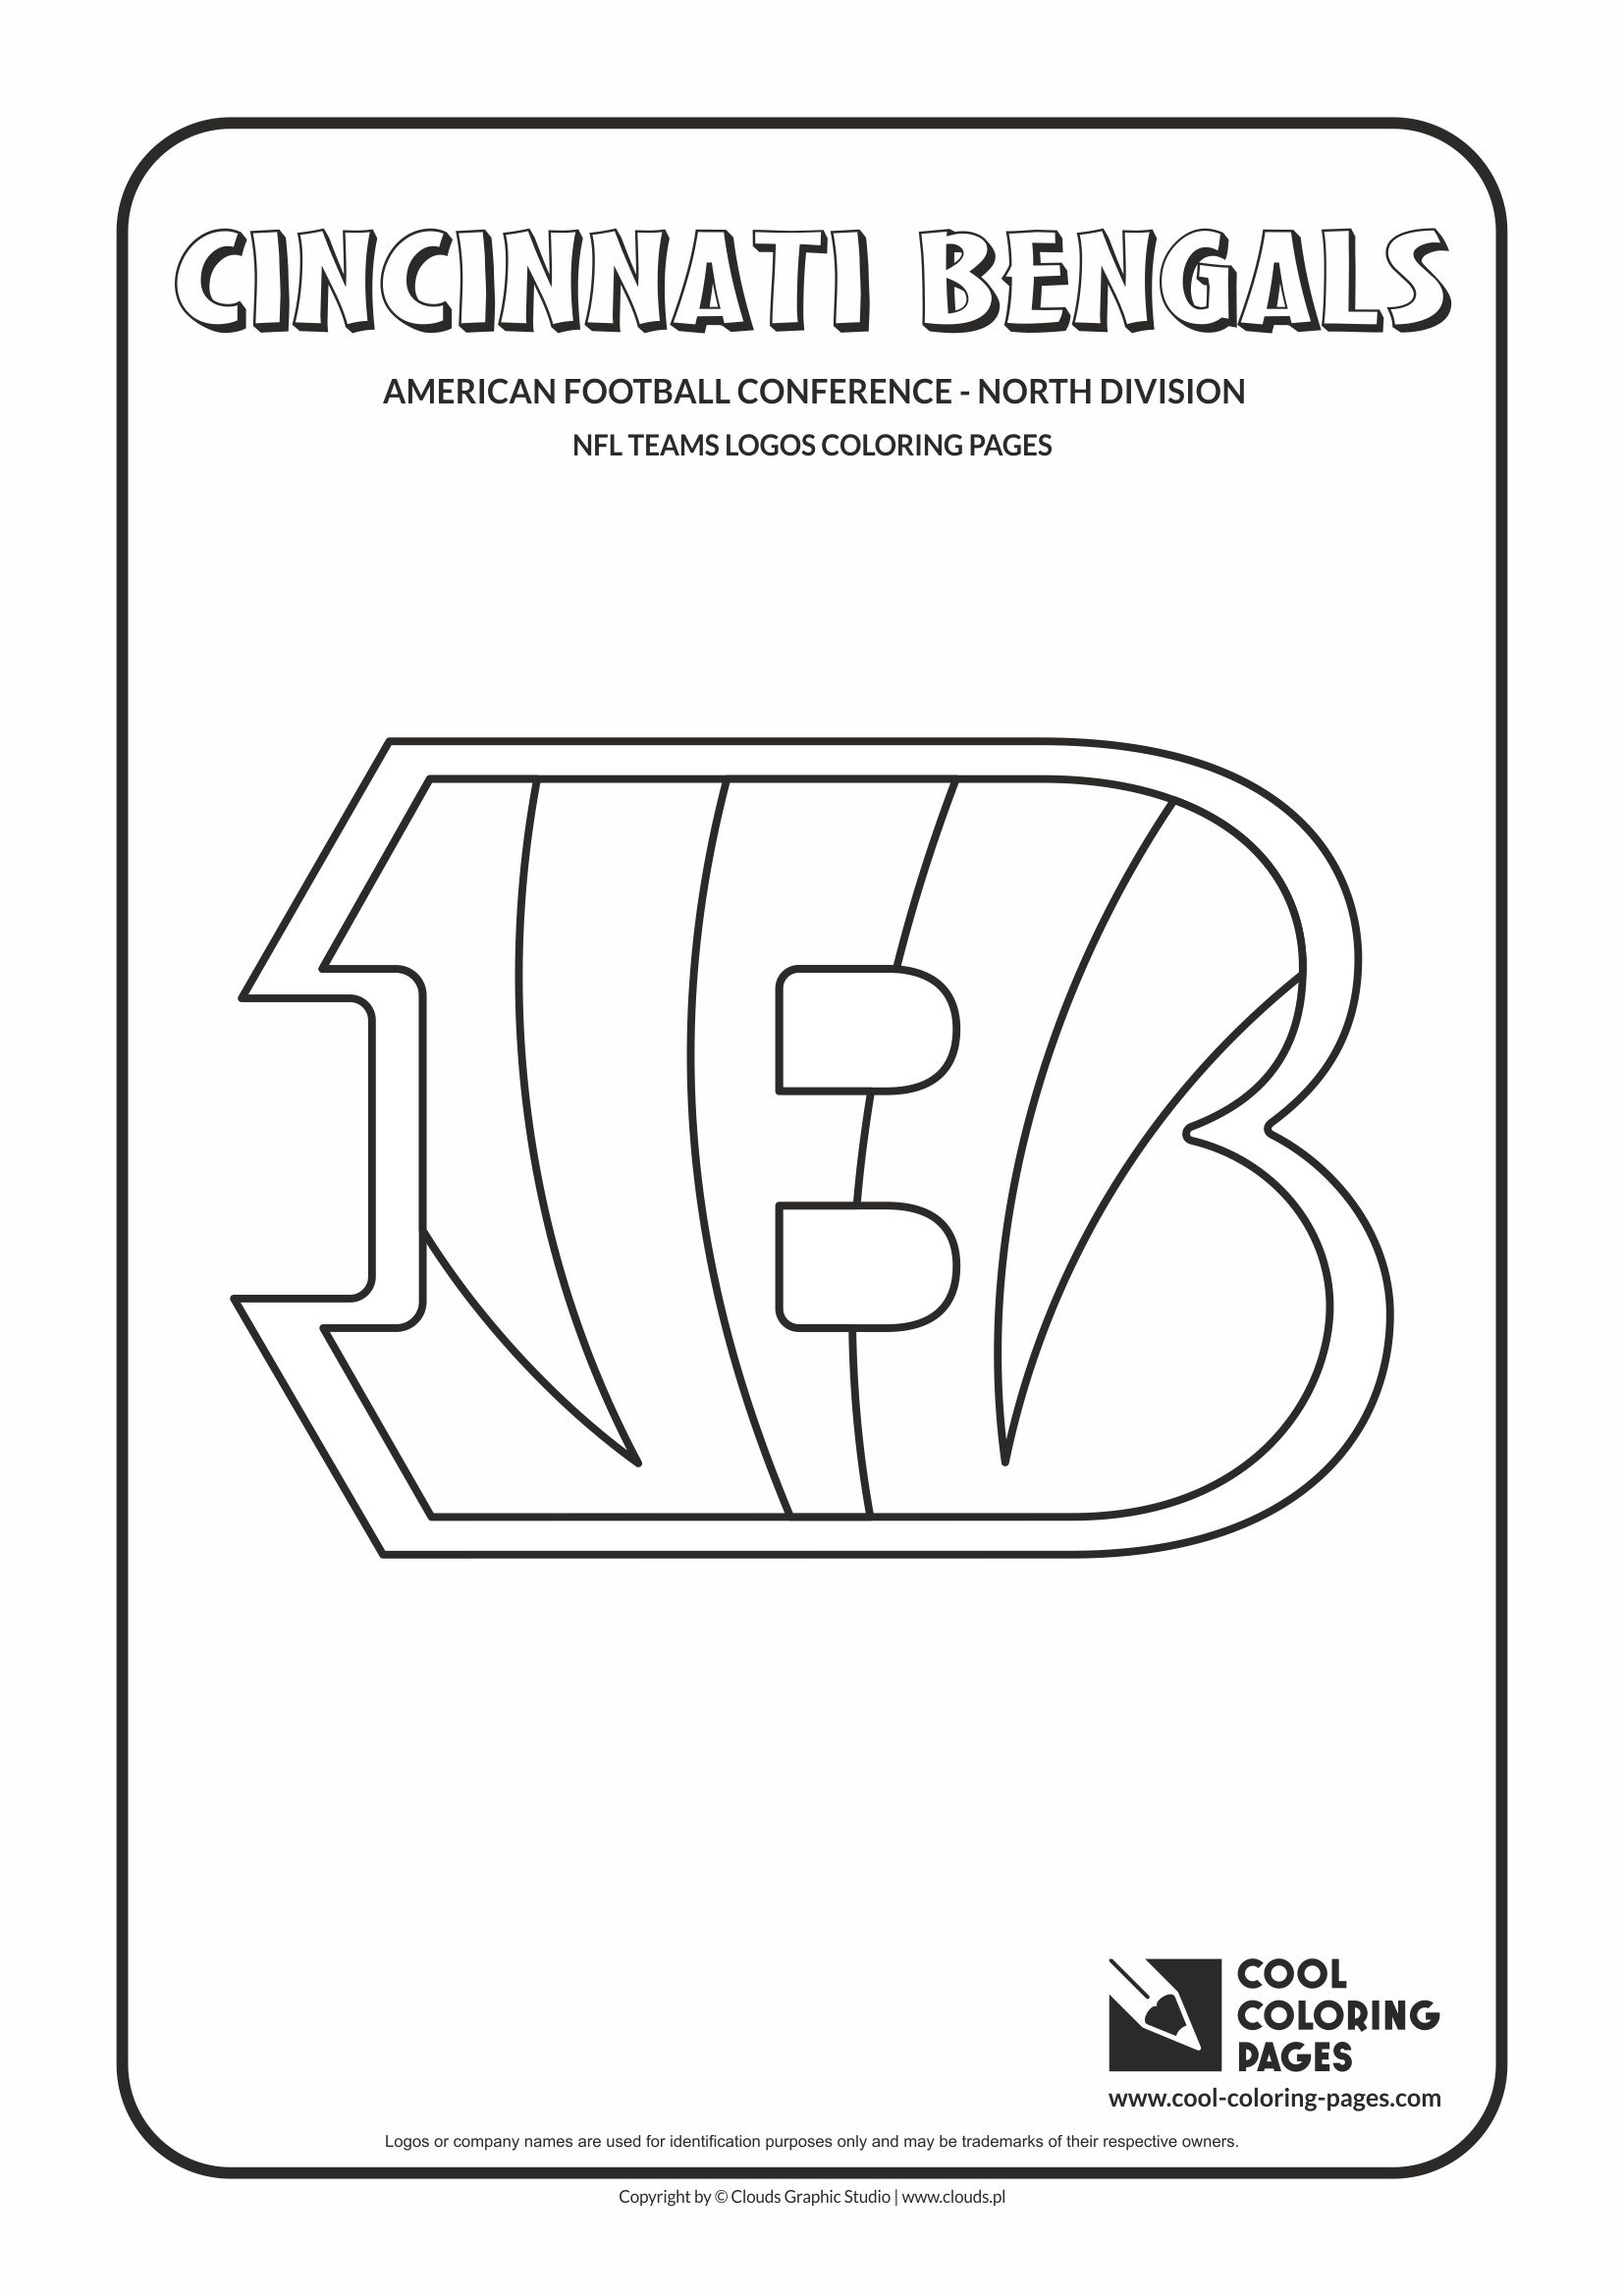 Cool Coloring Pages Nfl Teams Logos Coloring Pages